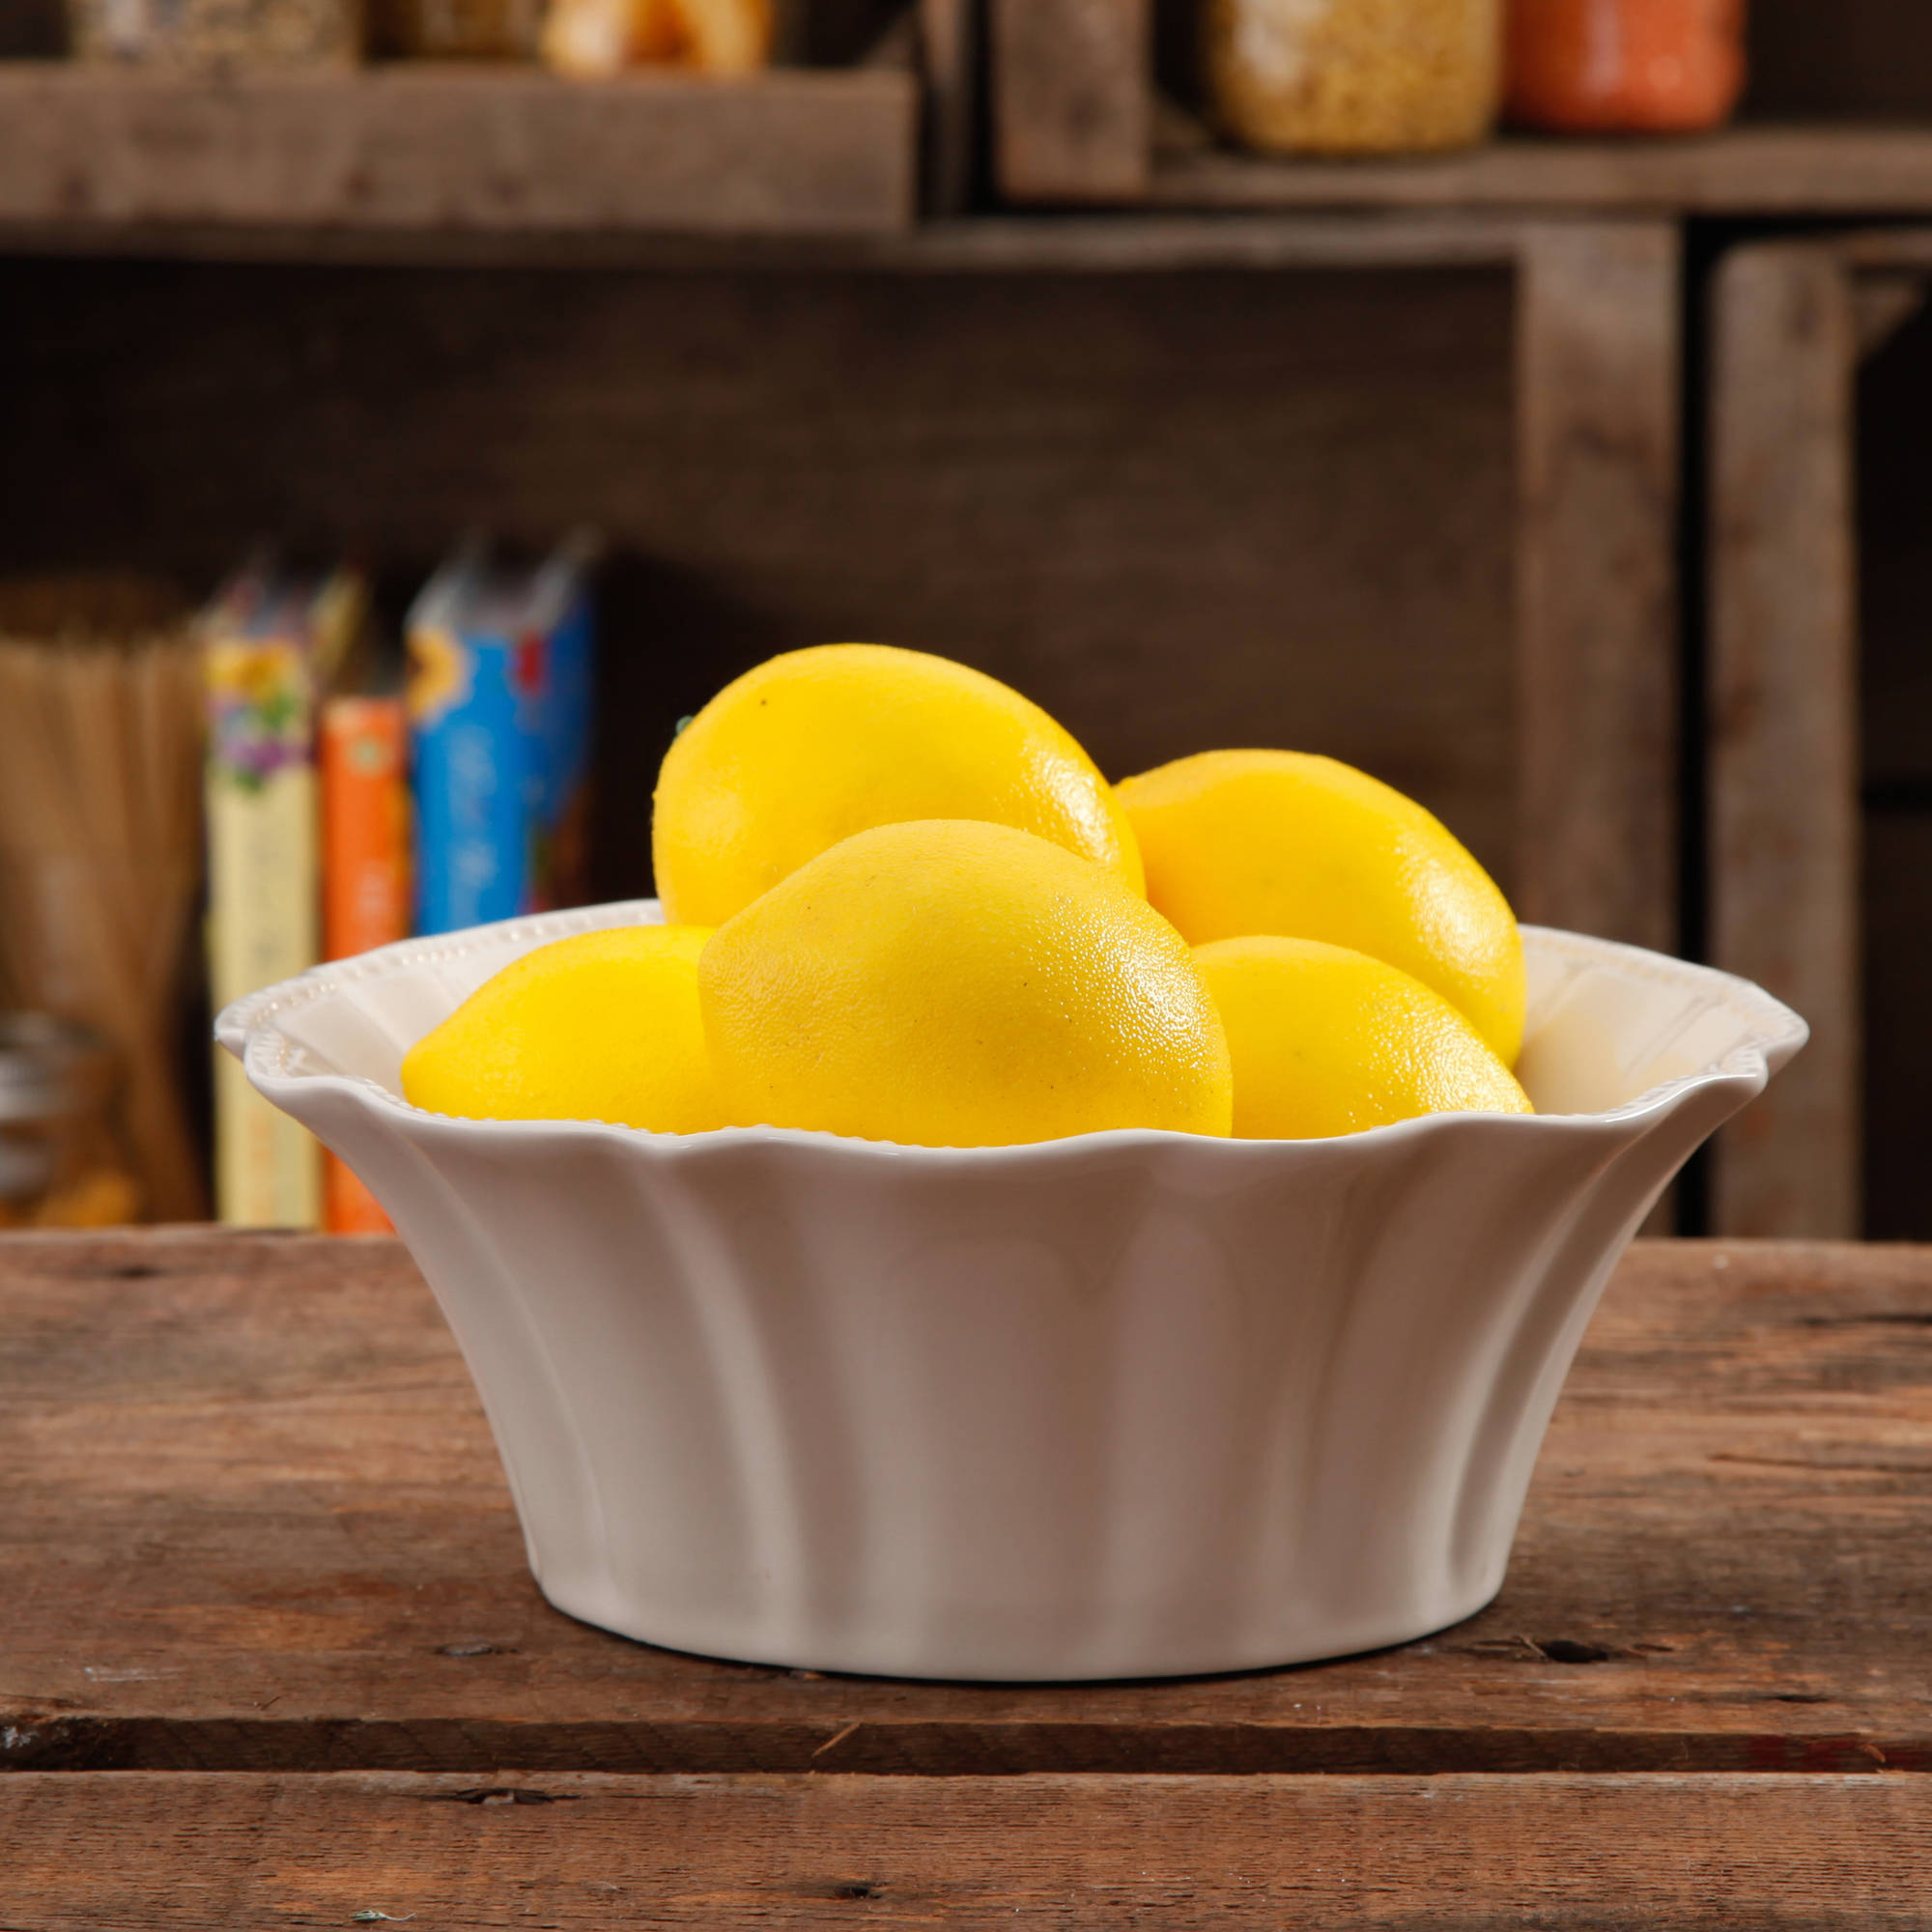 The Pioneer Woman Paige Linen Transparent Glaze Serving Bowl